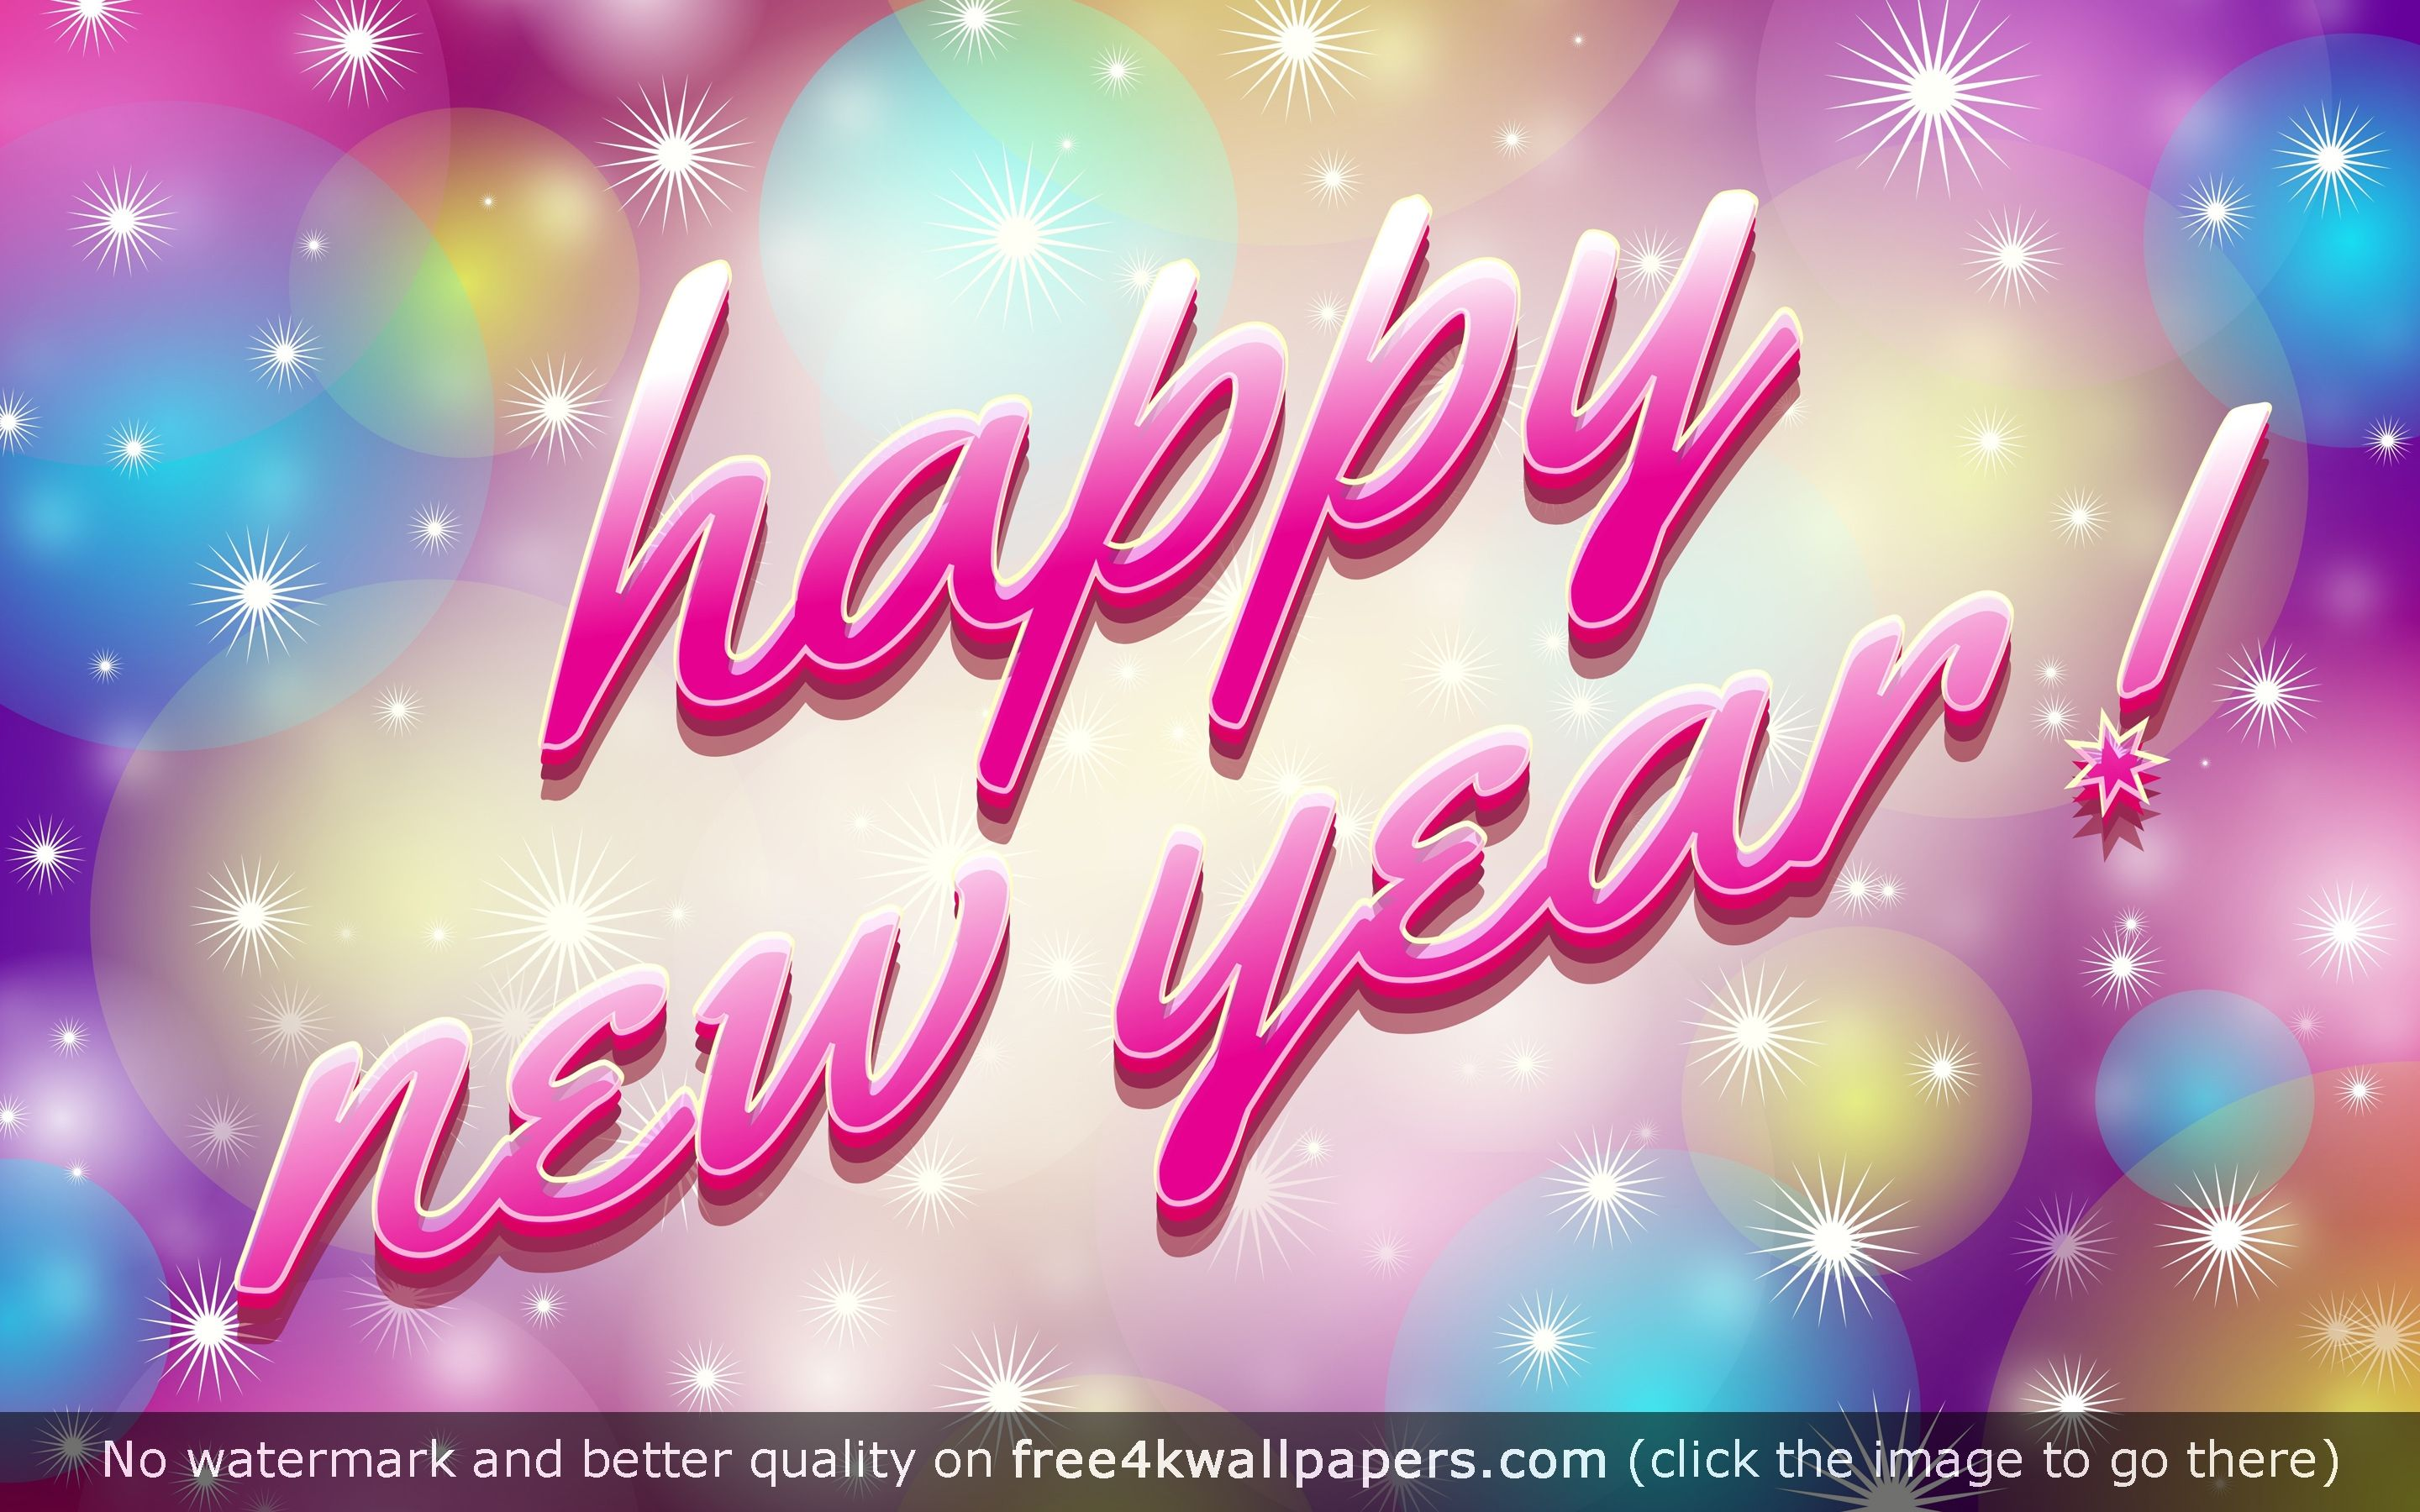 happy new year 4k 5k hd wallpaper download happy new year 4k 5k hd wallpaper for your desktop tablet or mobile device